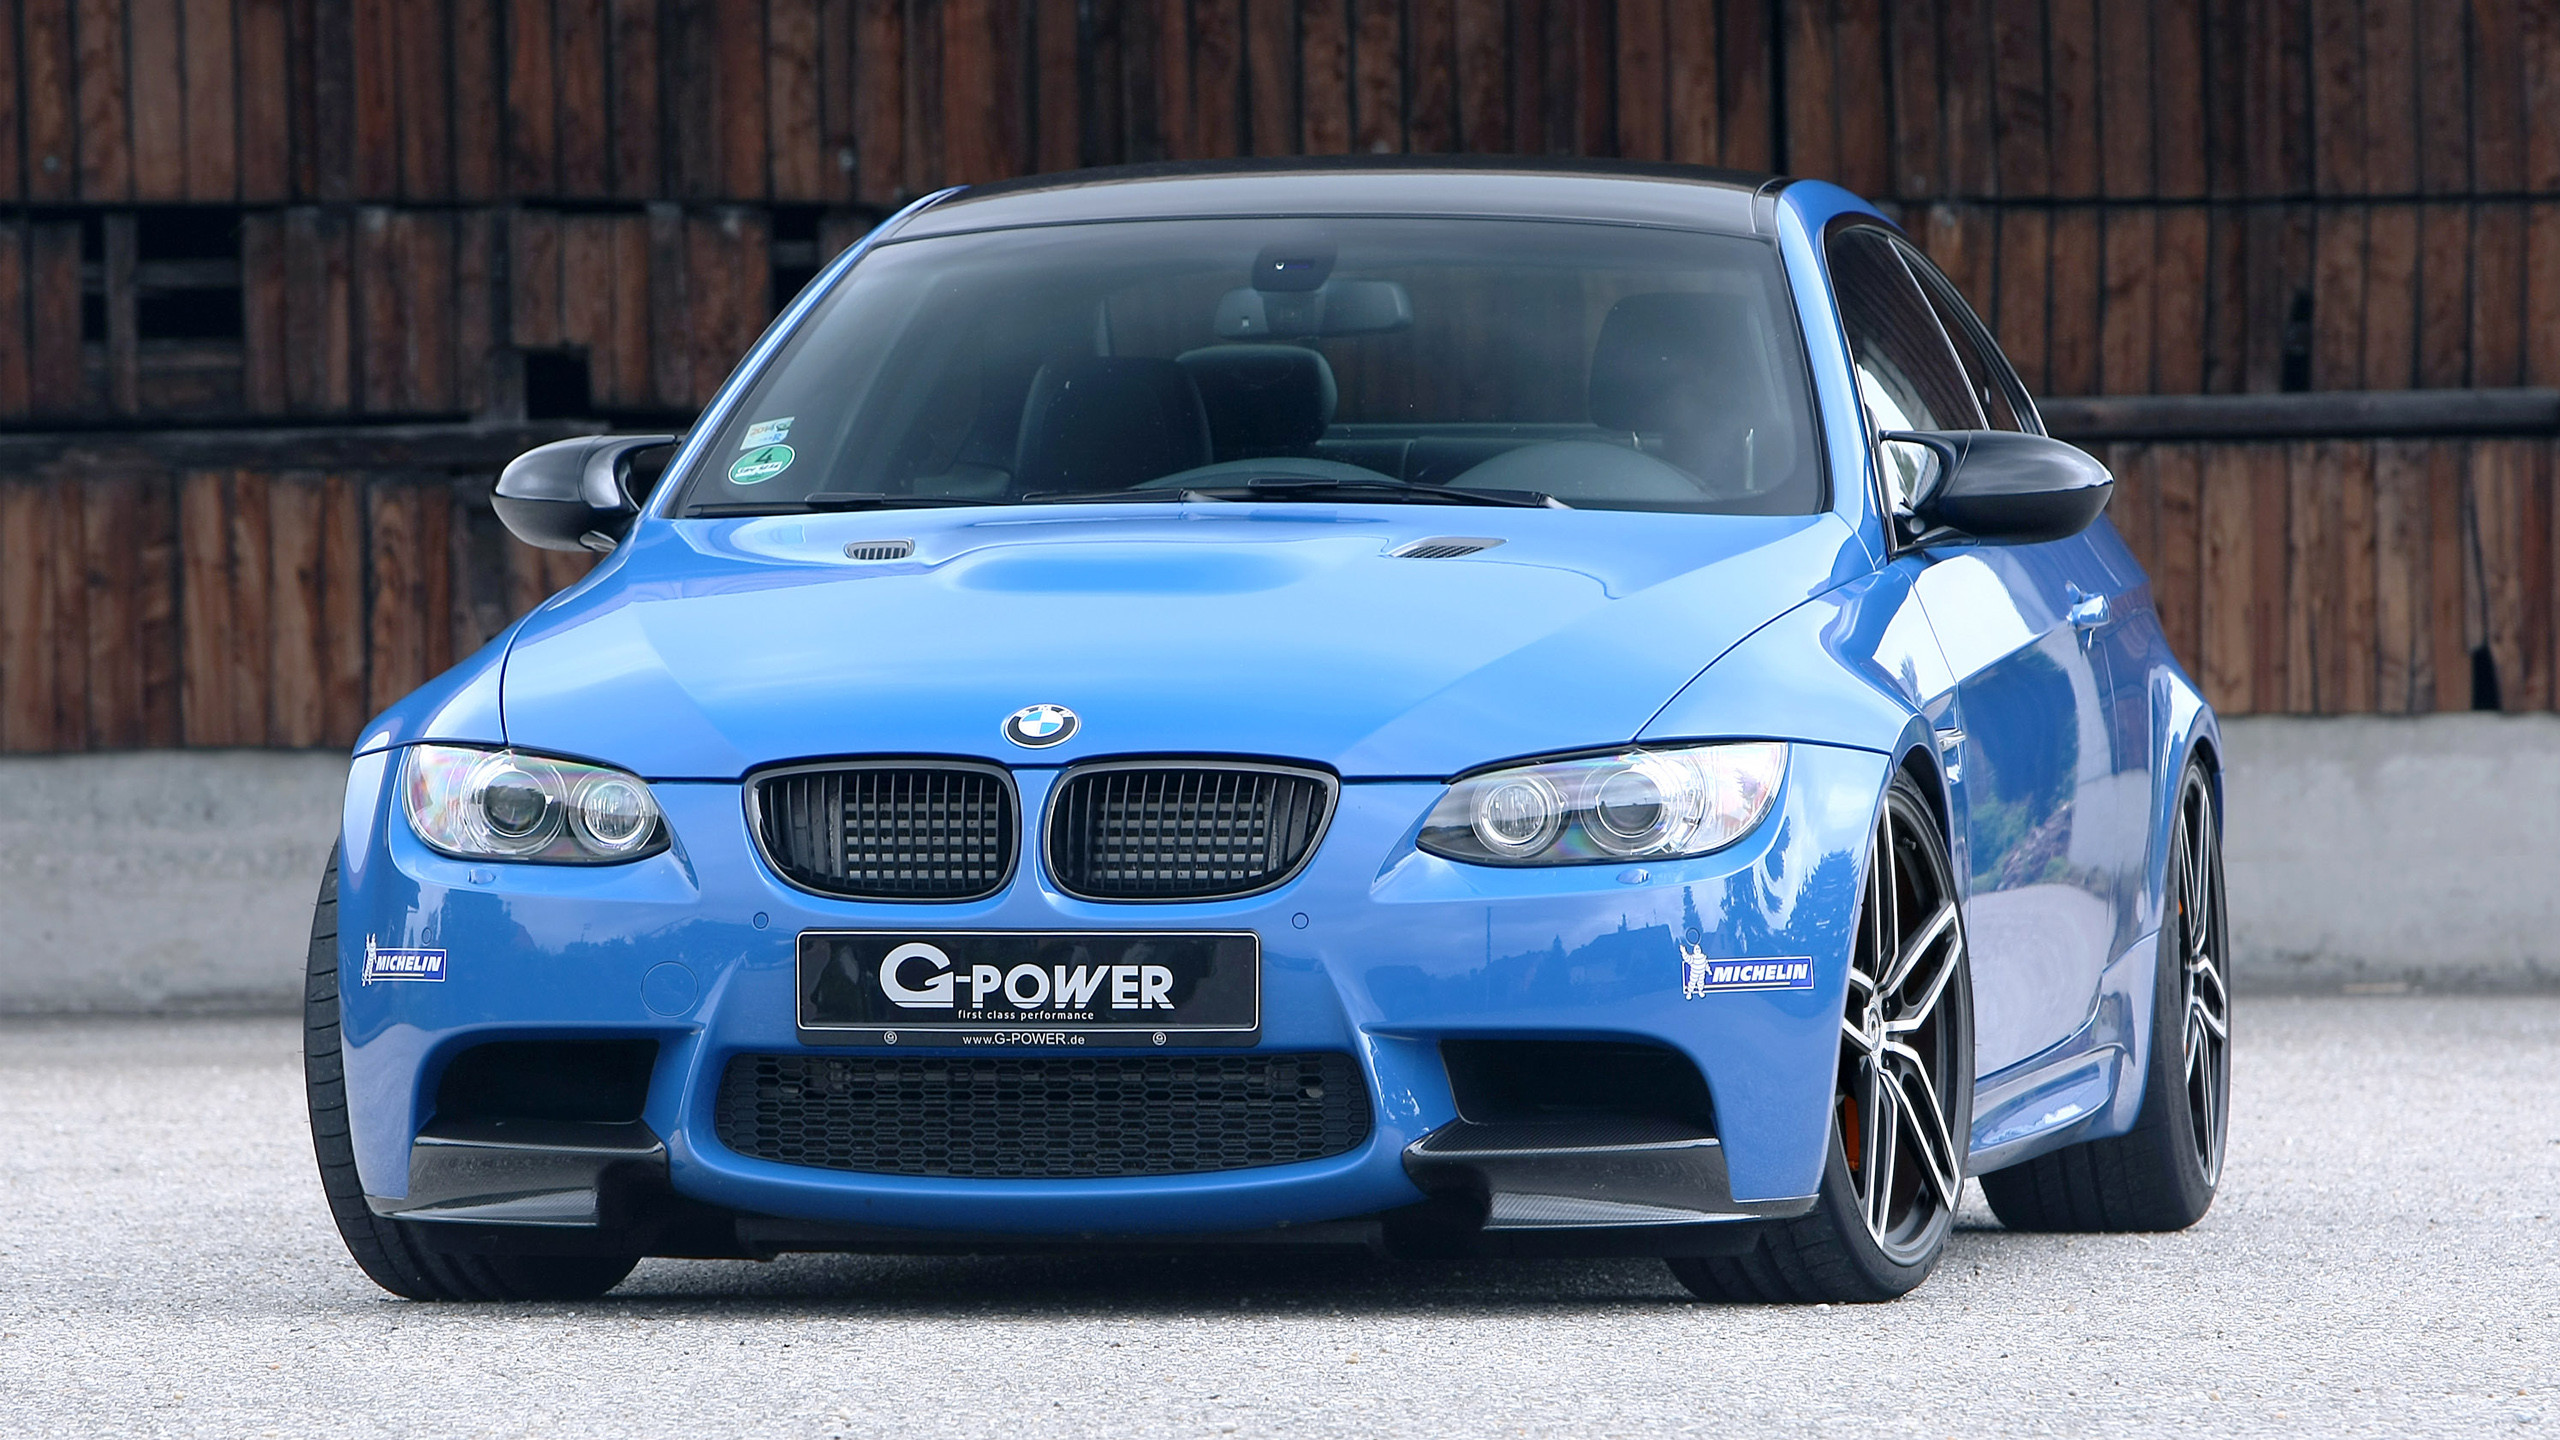 2560x1440 BMW M3 Car G POWER HD Wallpapers